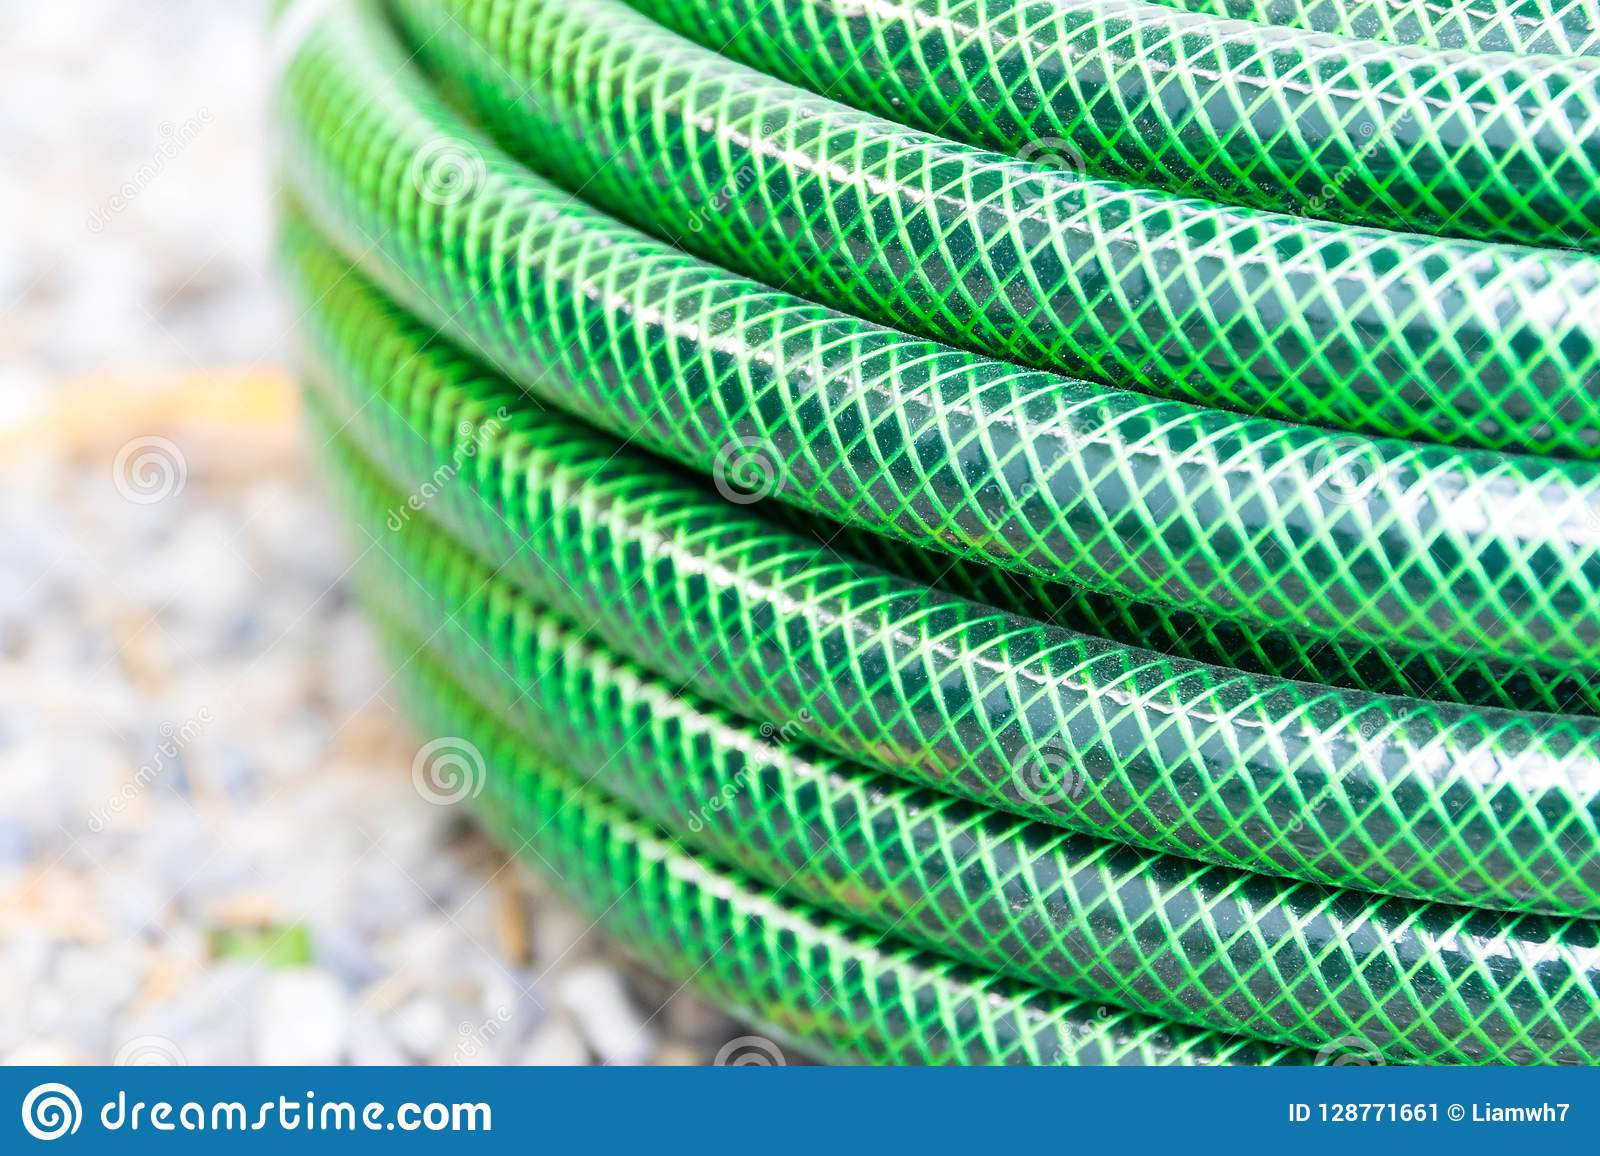 Garden hose pipe green water close up